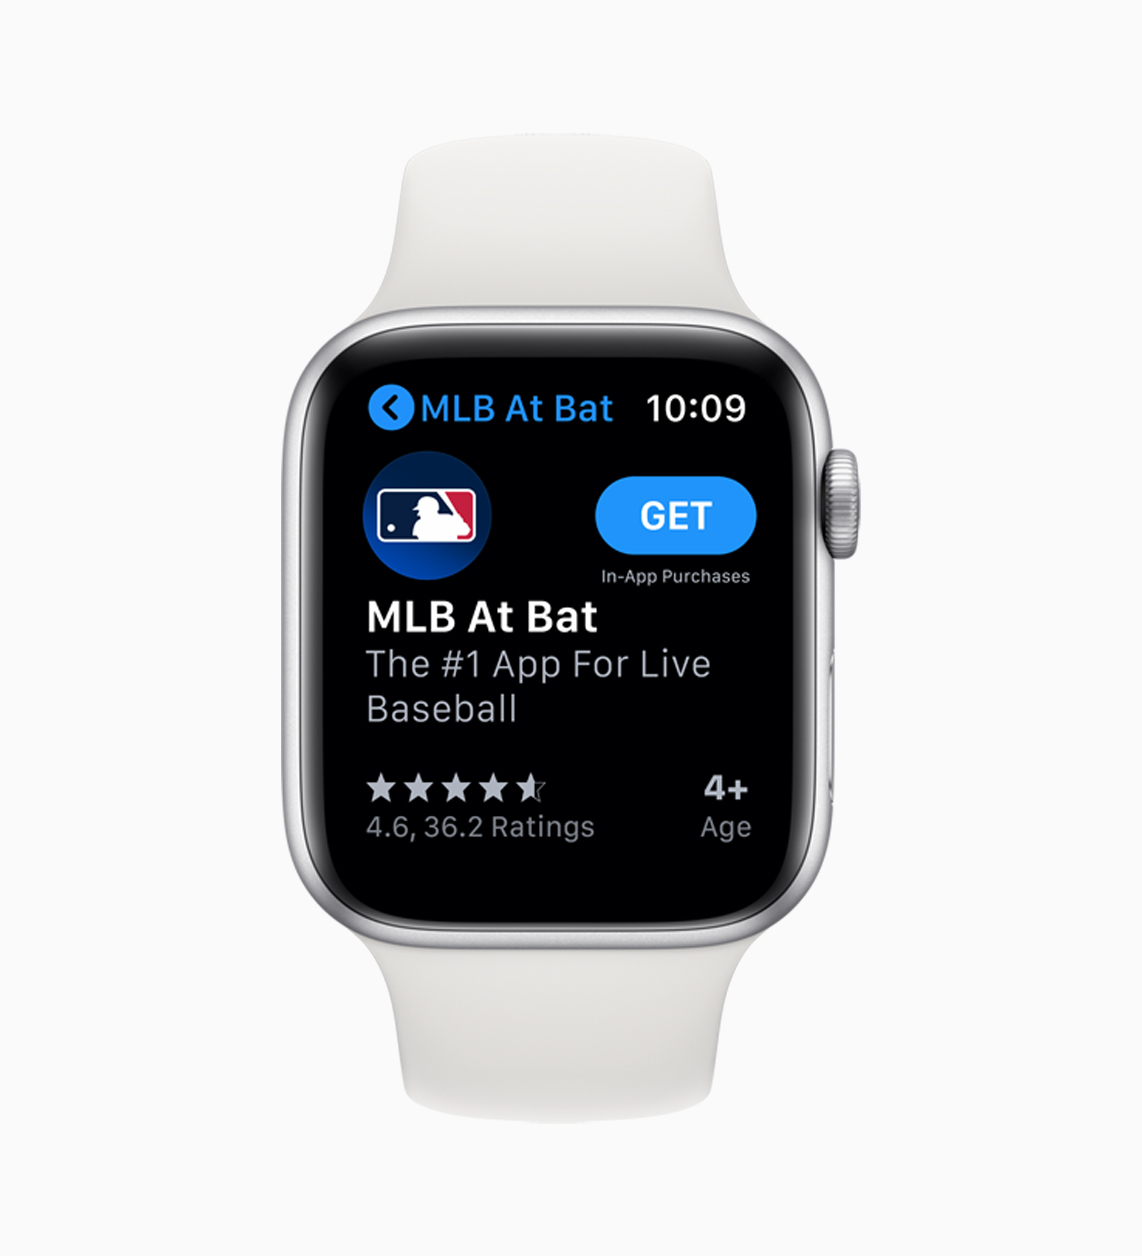 watchOS 6 is Here With Its Own App Store and More